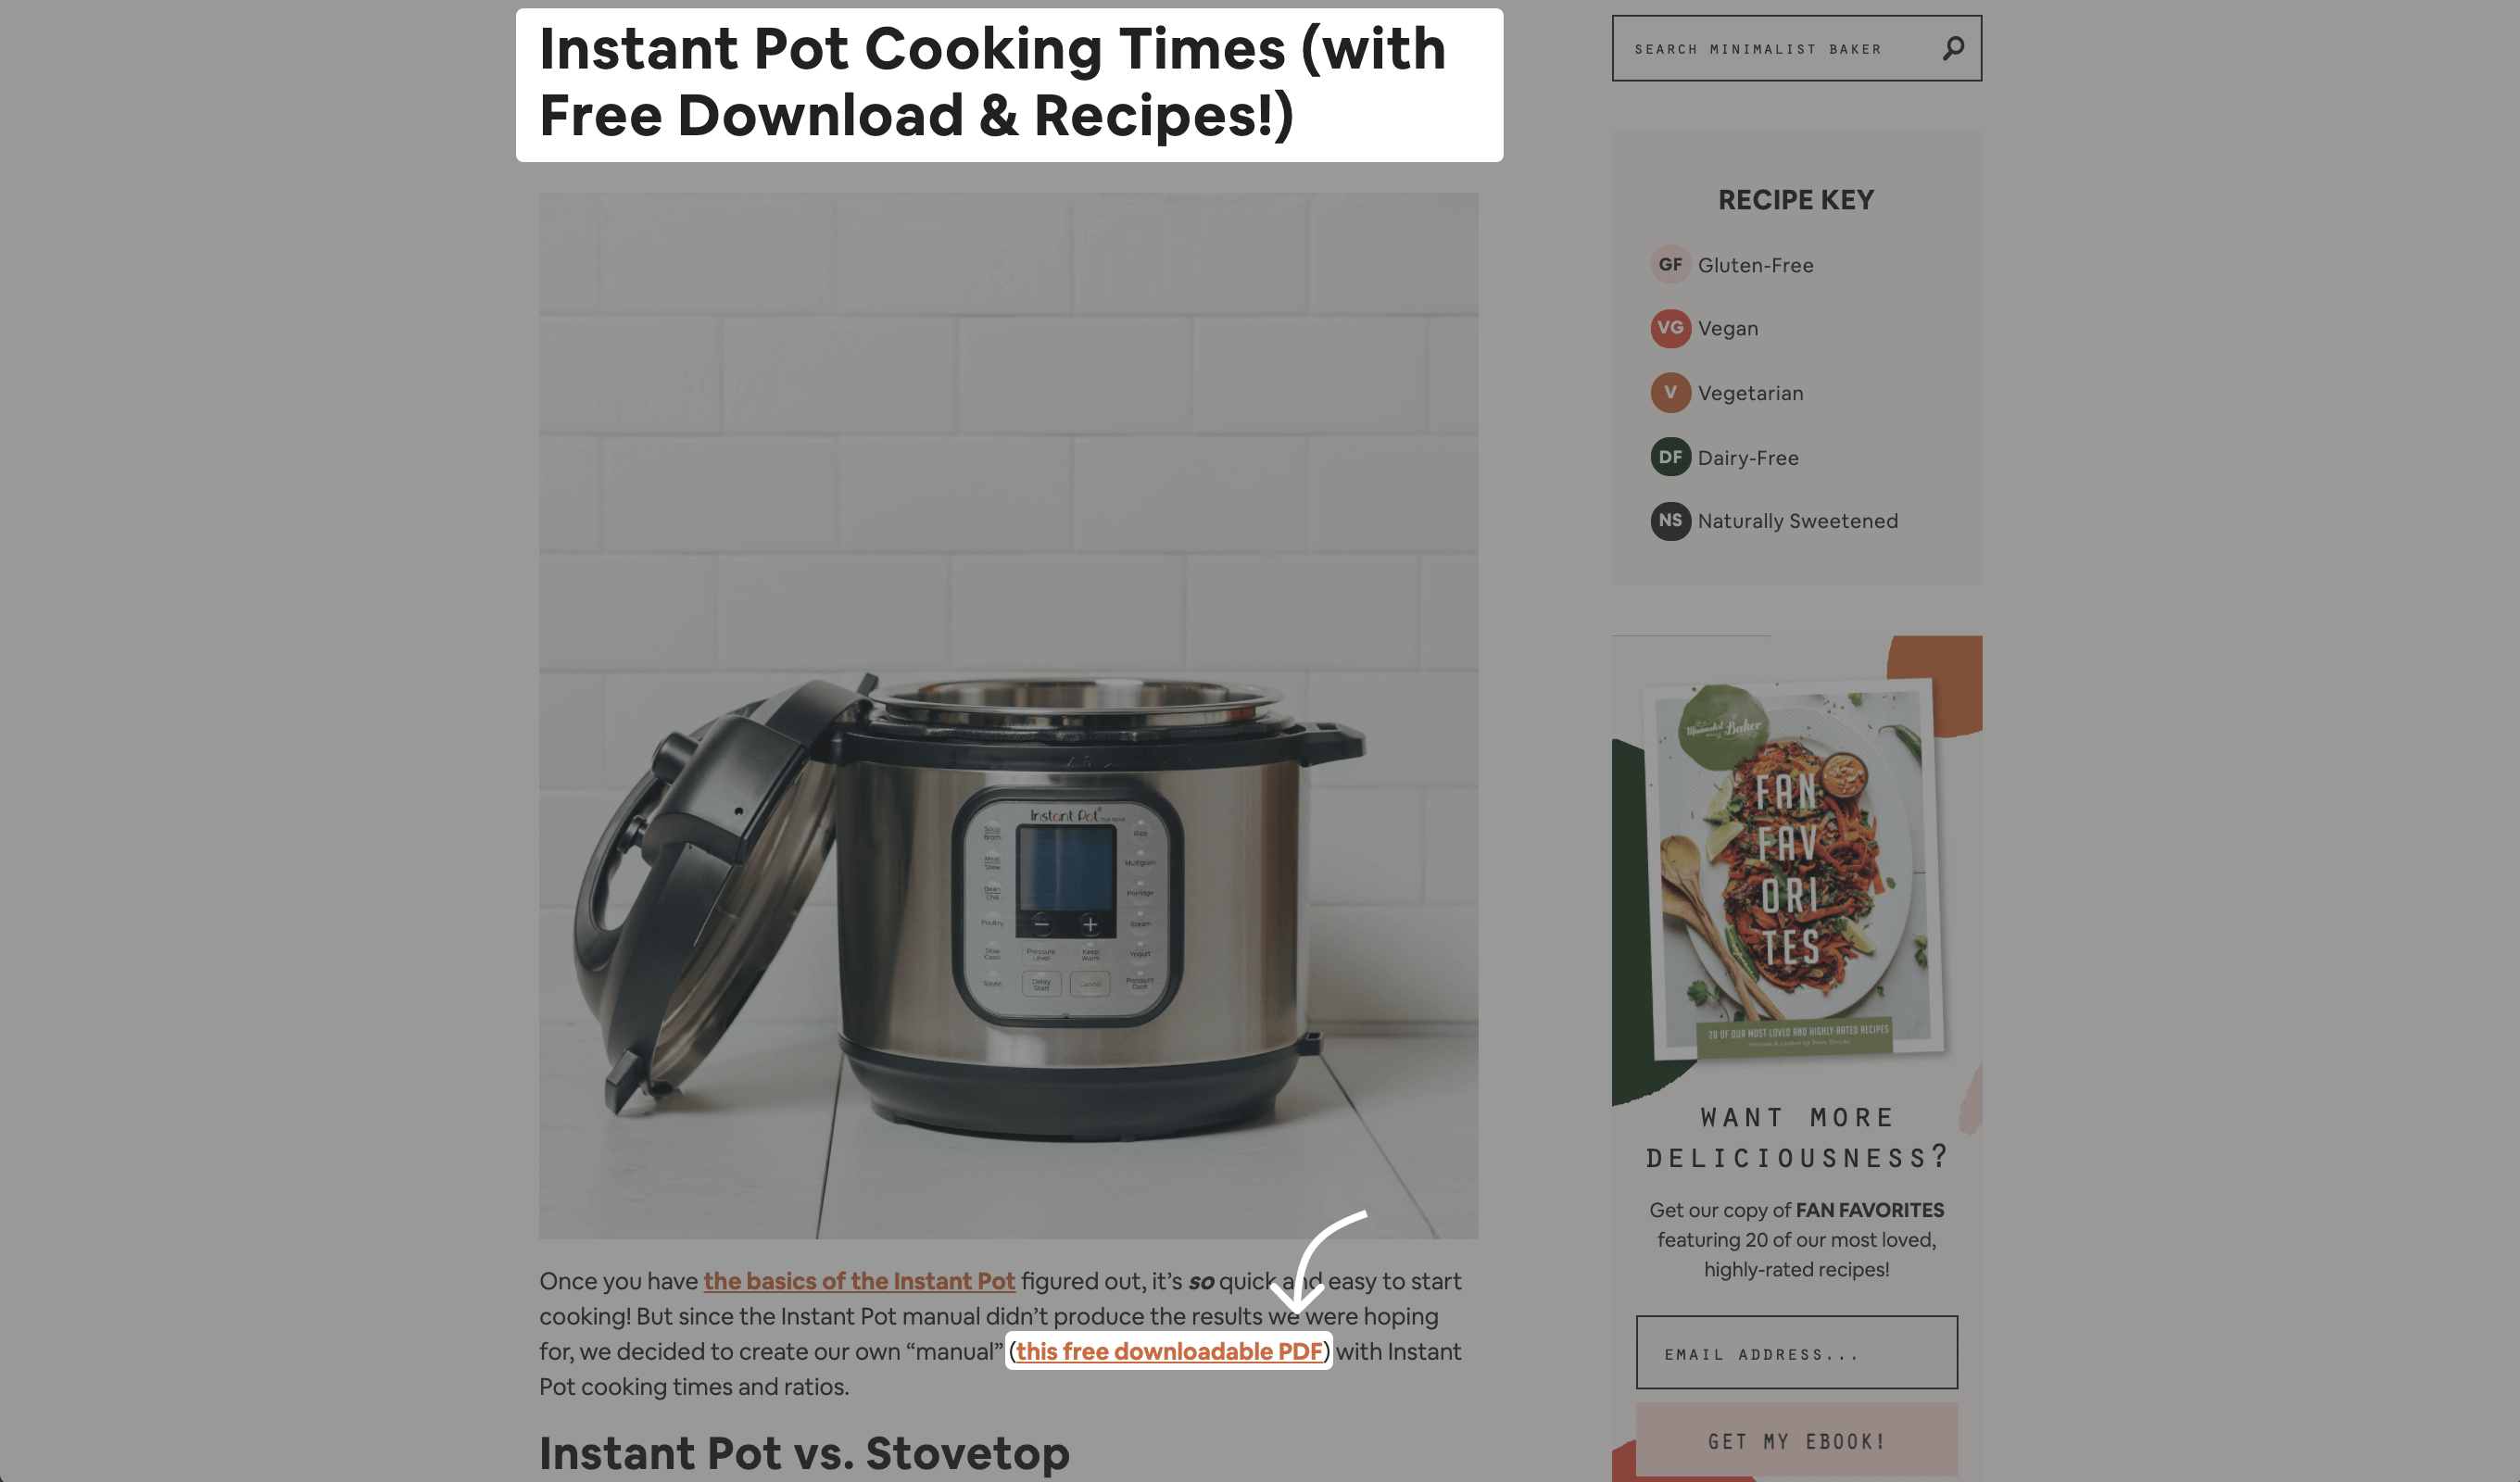 Example Funnel with an Instant Pot